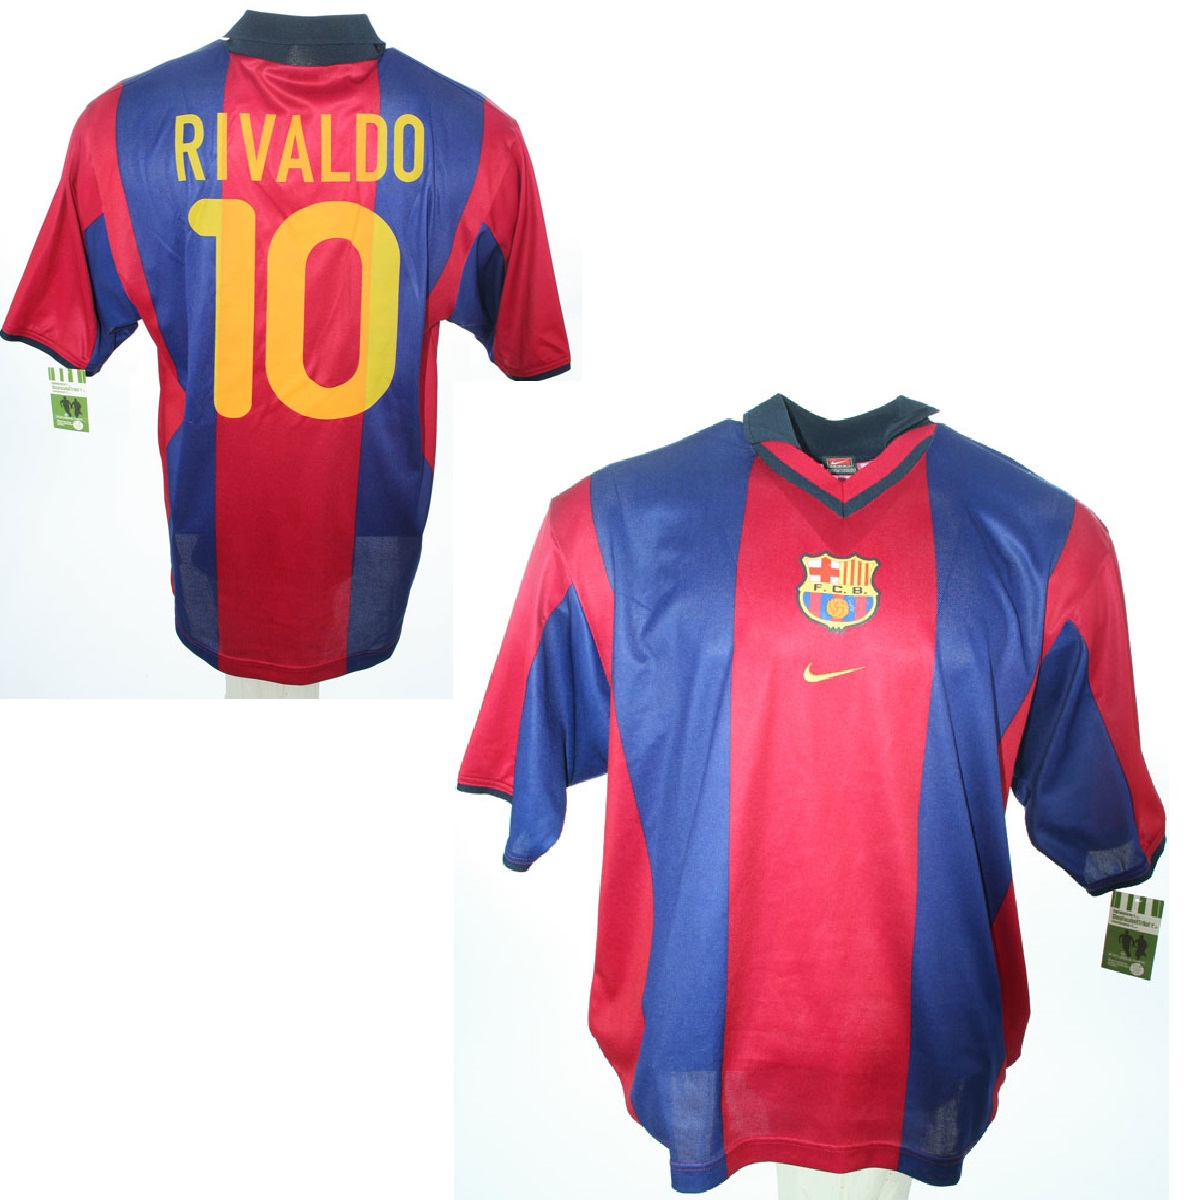 nike fc barcelona jersey 11 rivaldo home 2000 2001 blue red s m l xl xxl shirt buy order cheap online shop spieler trikot de retro vintage old football shirts jersey from super stars nike